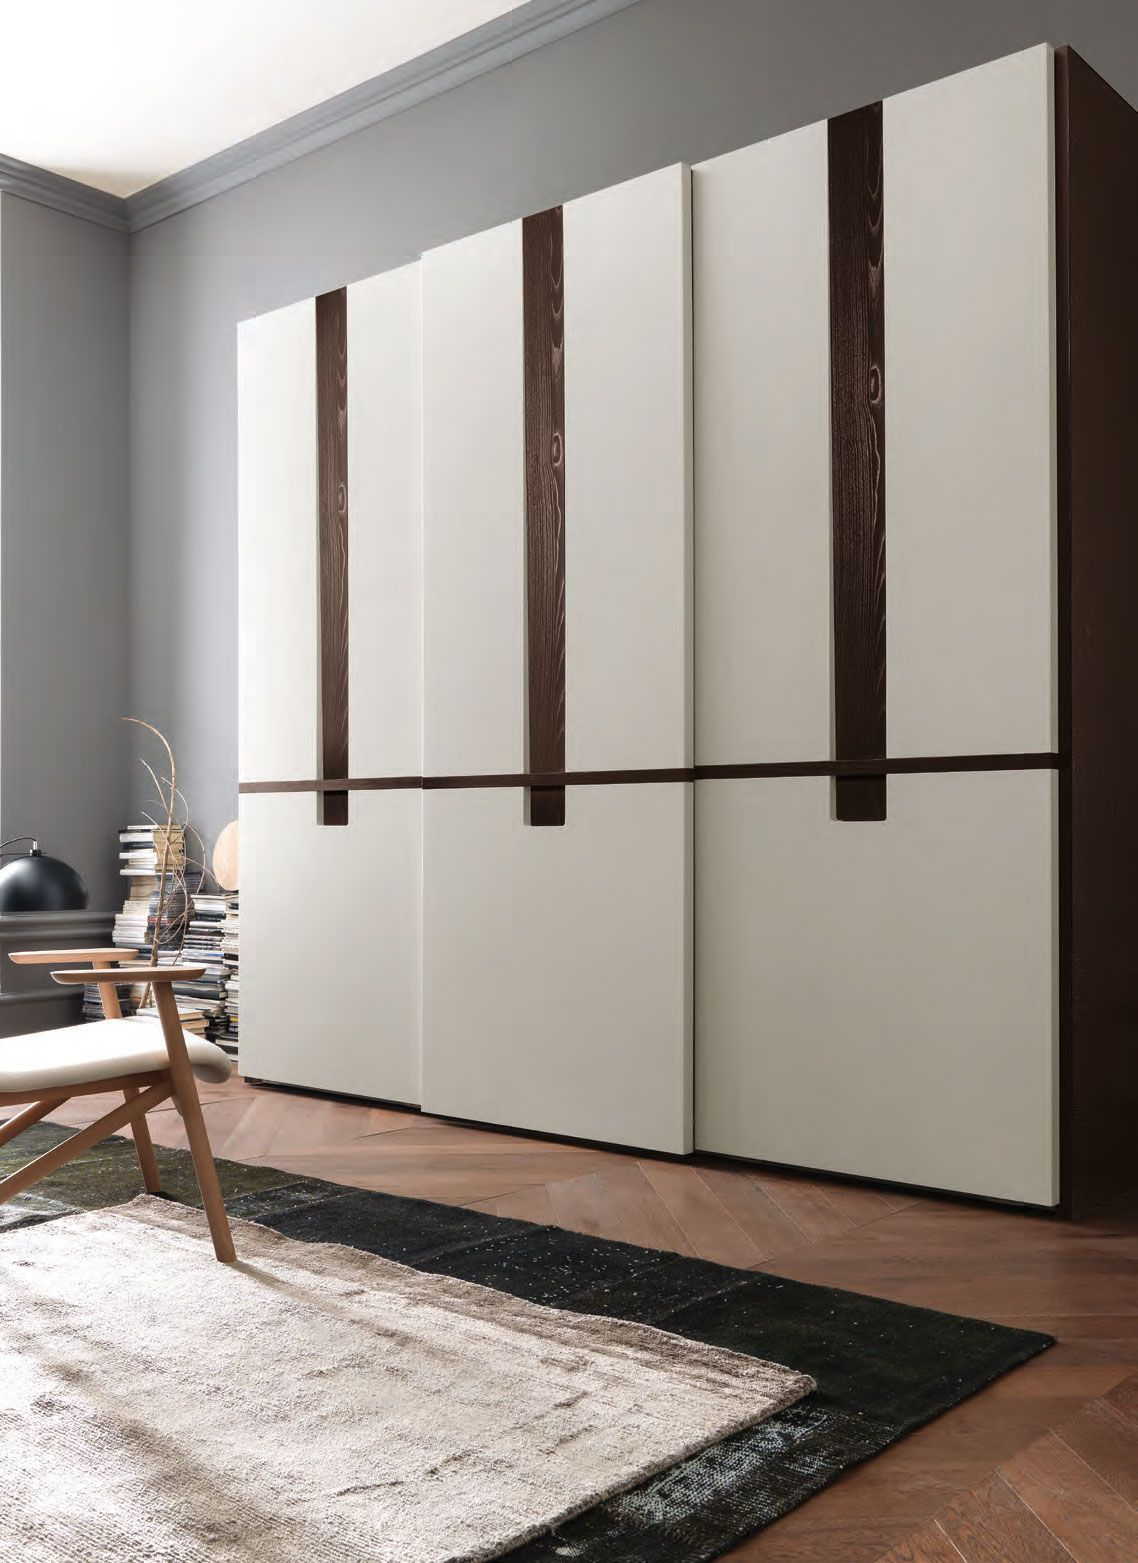 35 Modern Wardrobe Furniture Designs | Wardrobe furniture, Modern ...